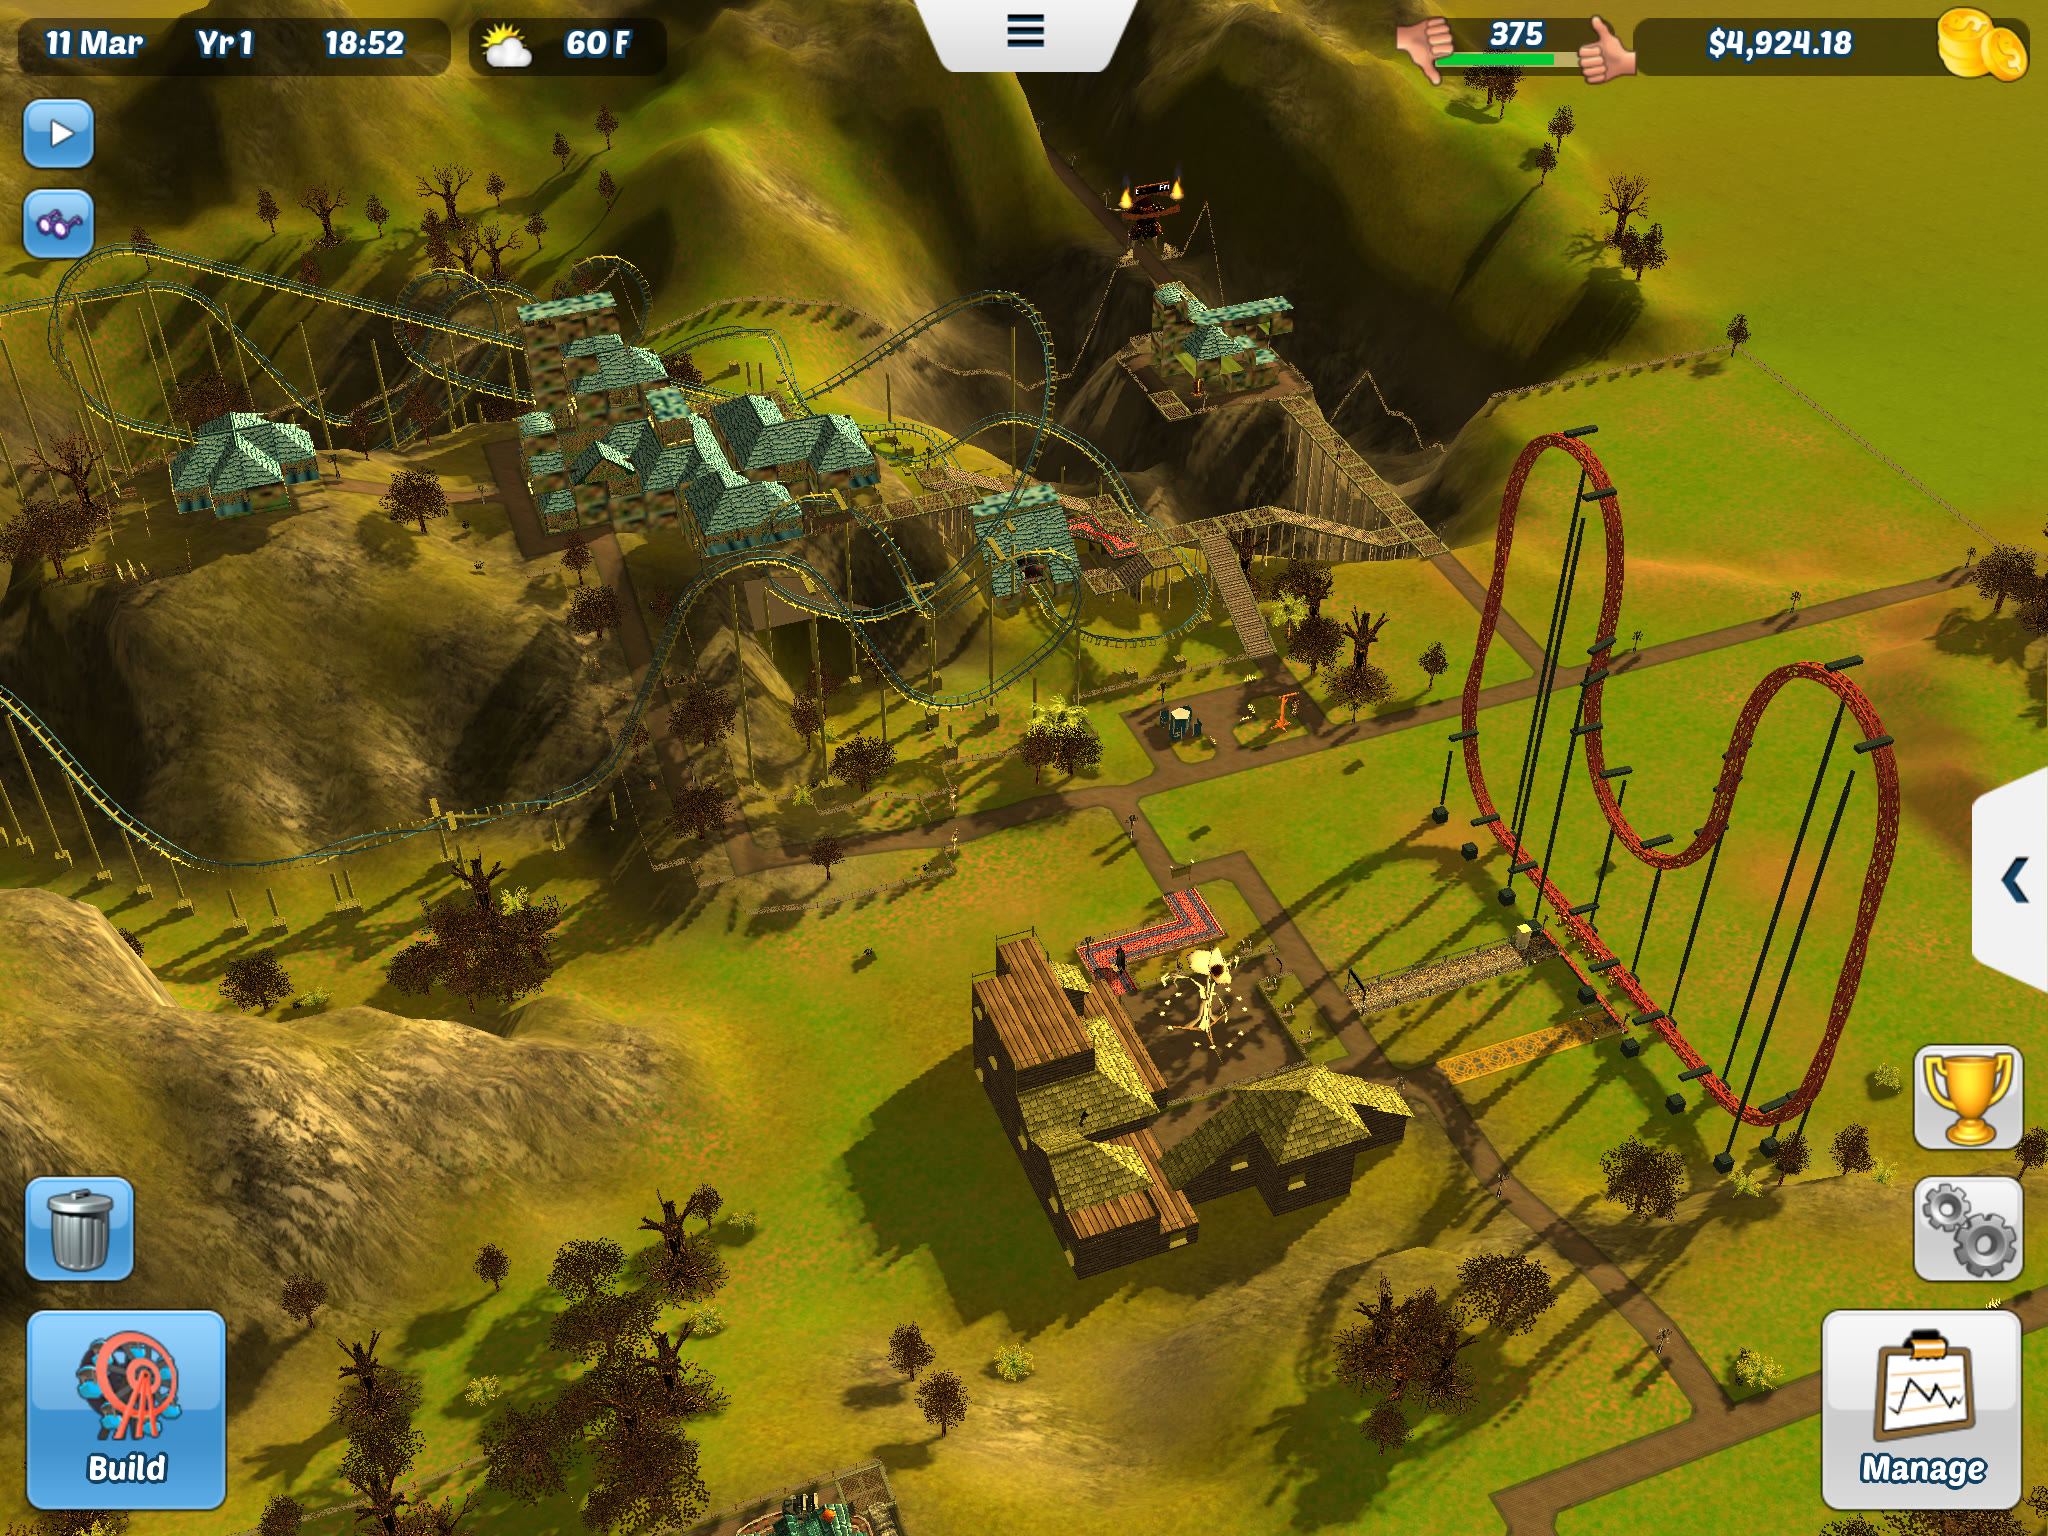 RollerCoaster Tycoon 3' Review – Life is a Fun